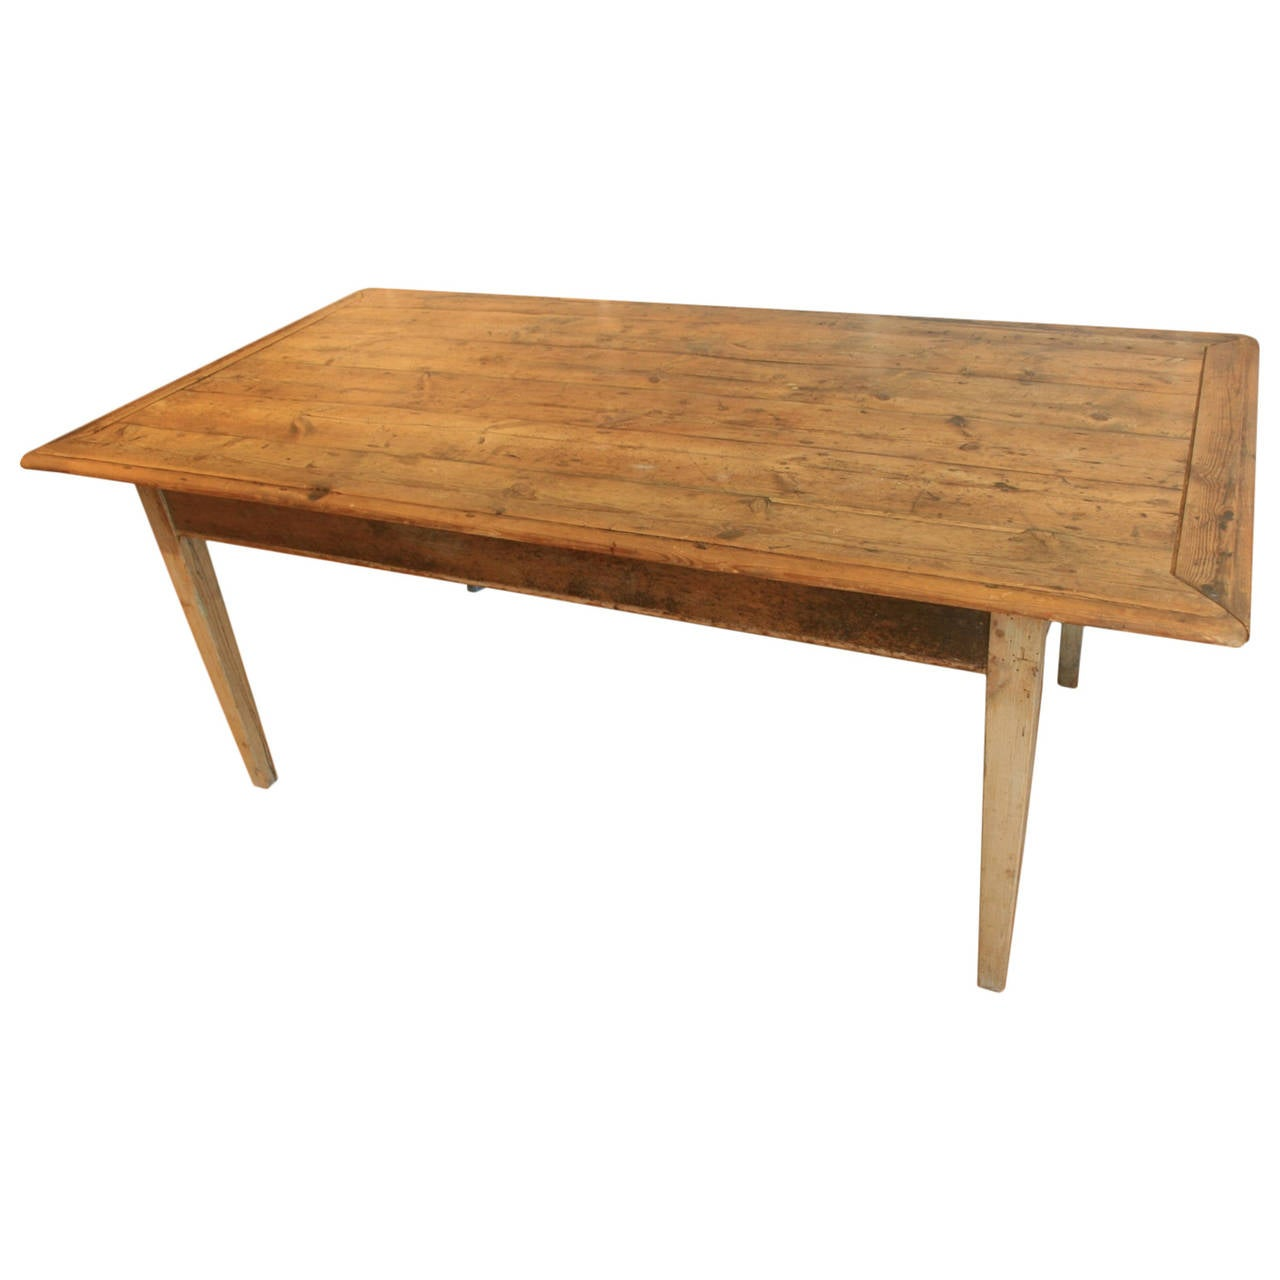 19th century irish scrubbed pine dining table at 1stdibs for Pine dining room table